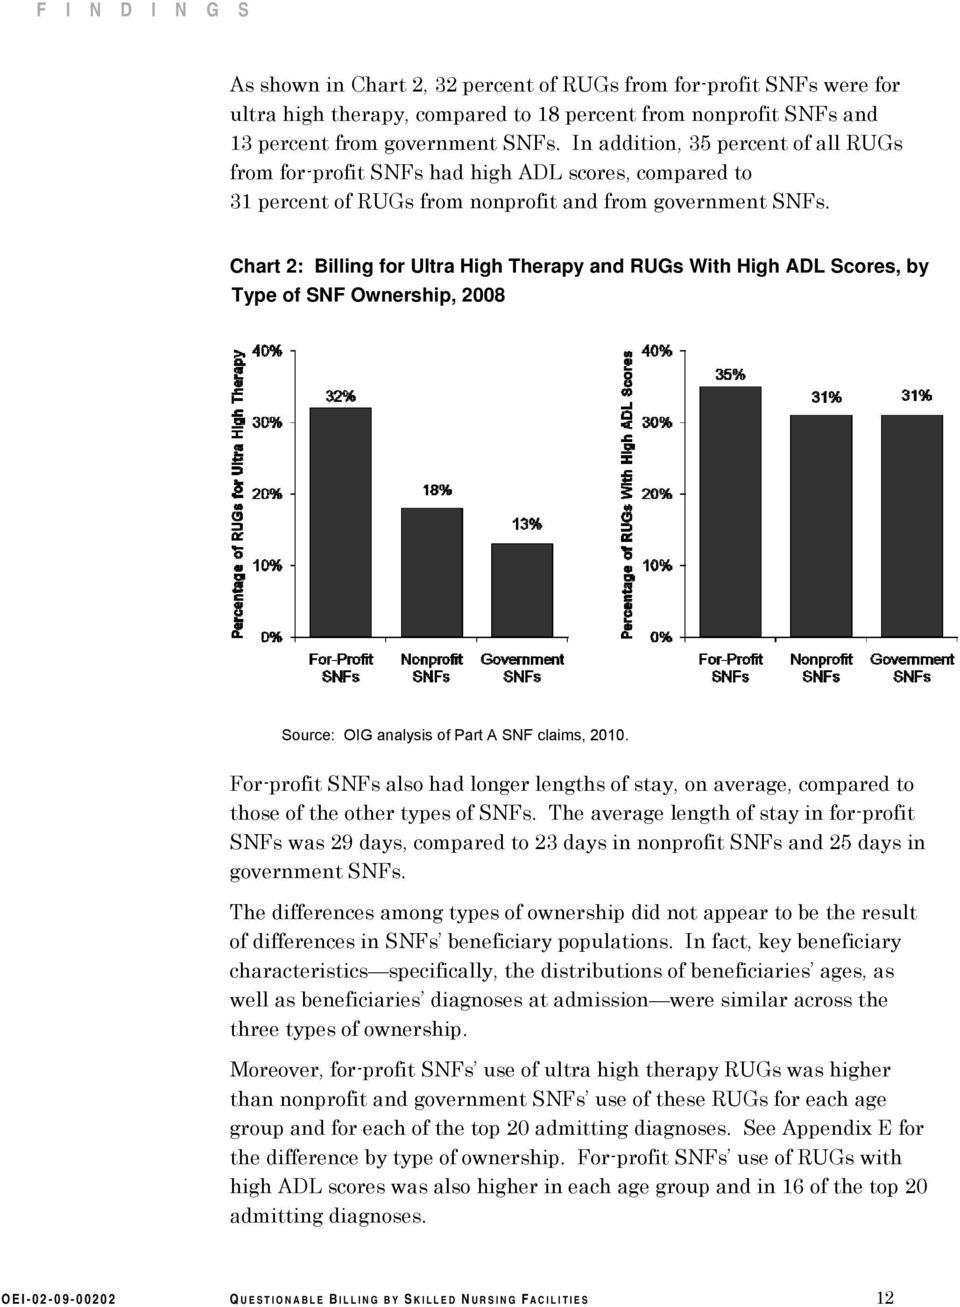 Chart 2: Billing for Ultra High Therapy and RUGs With High ADL Scores, by Type of SNF Ownership, 2008 Source: OIG analysis of Part A SNF claims, 2010.